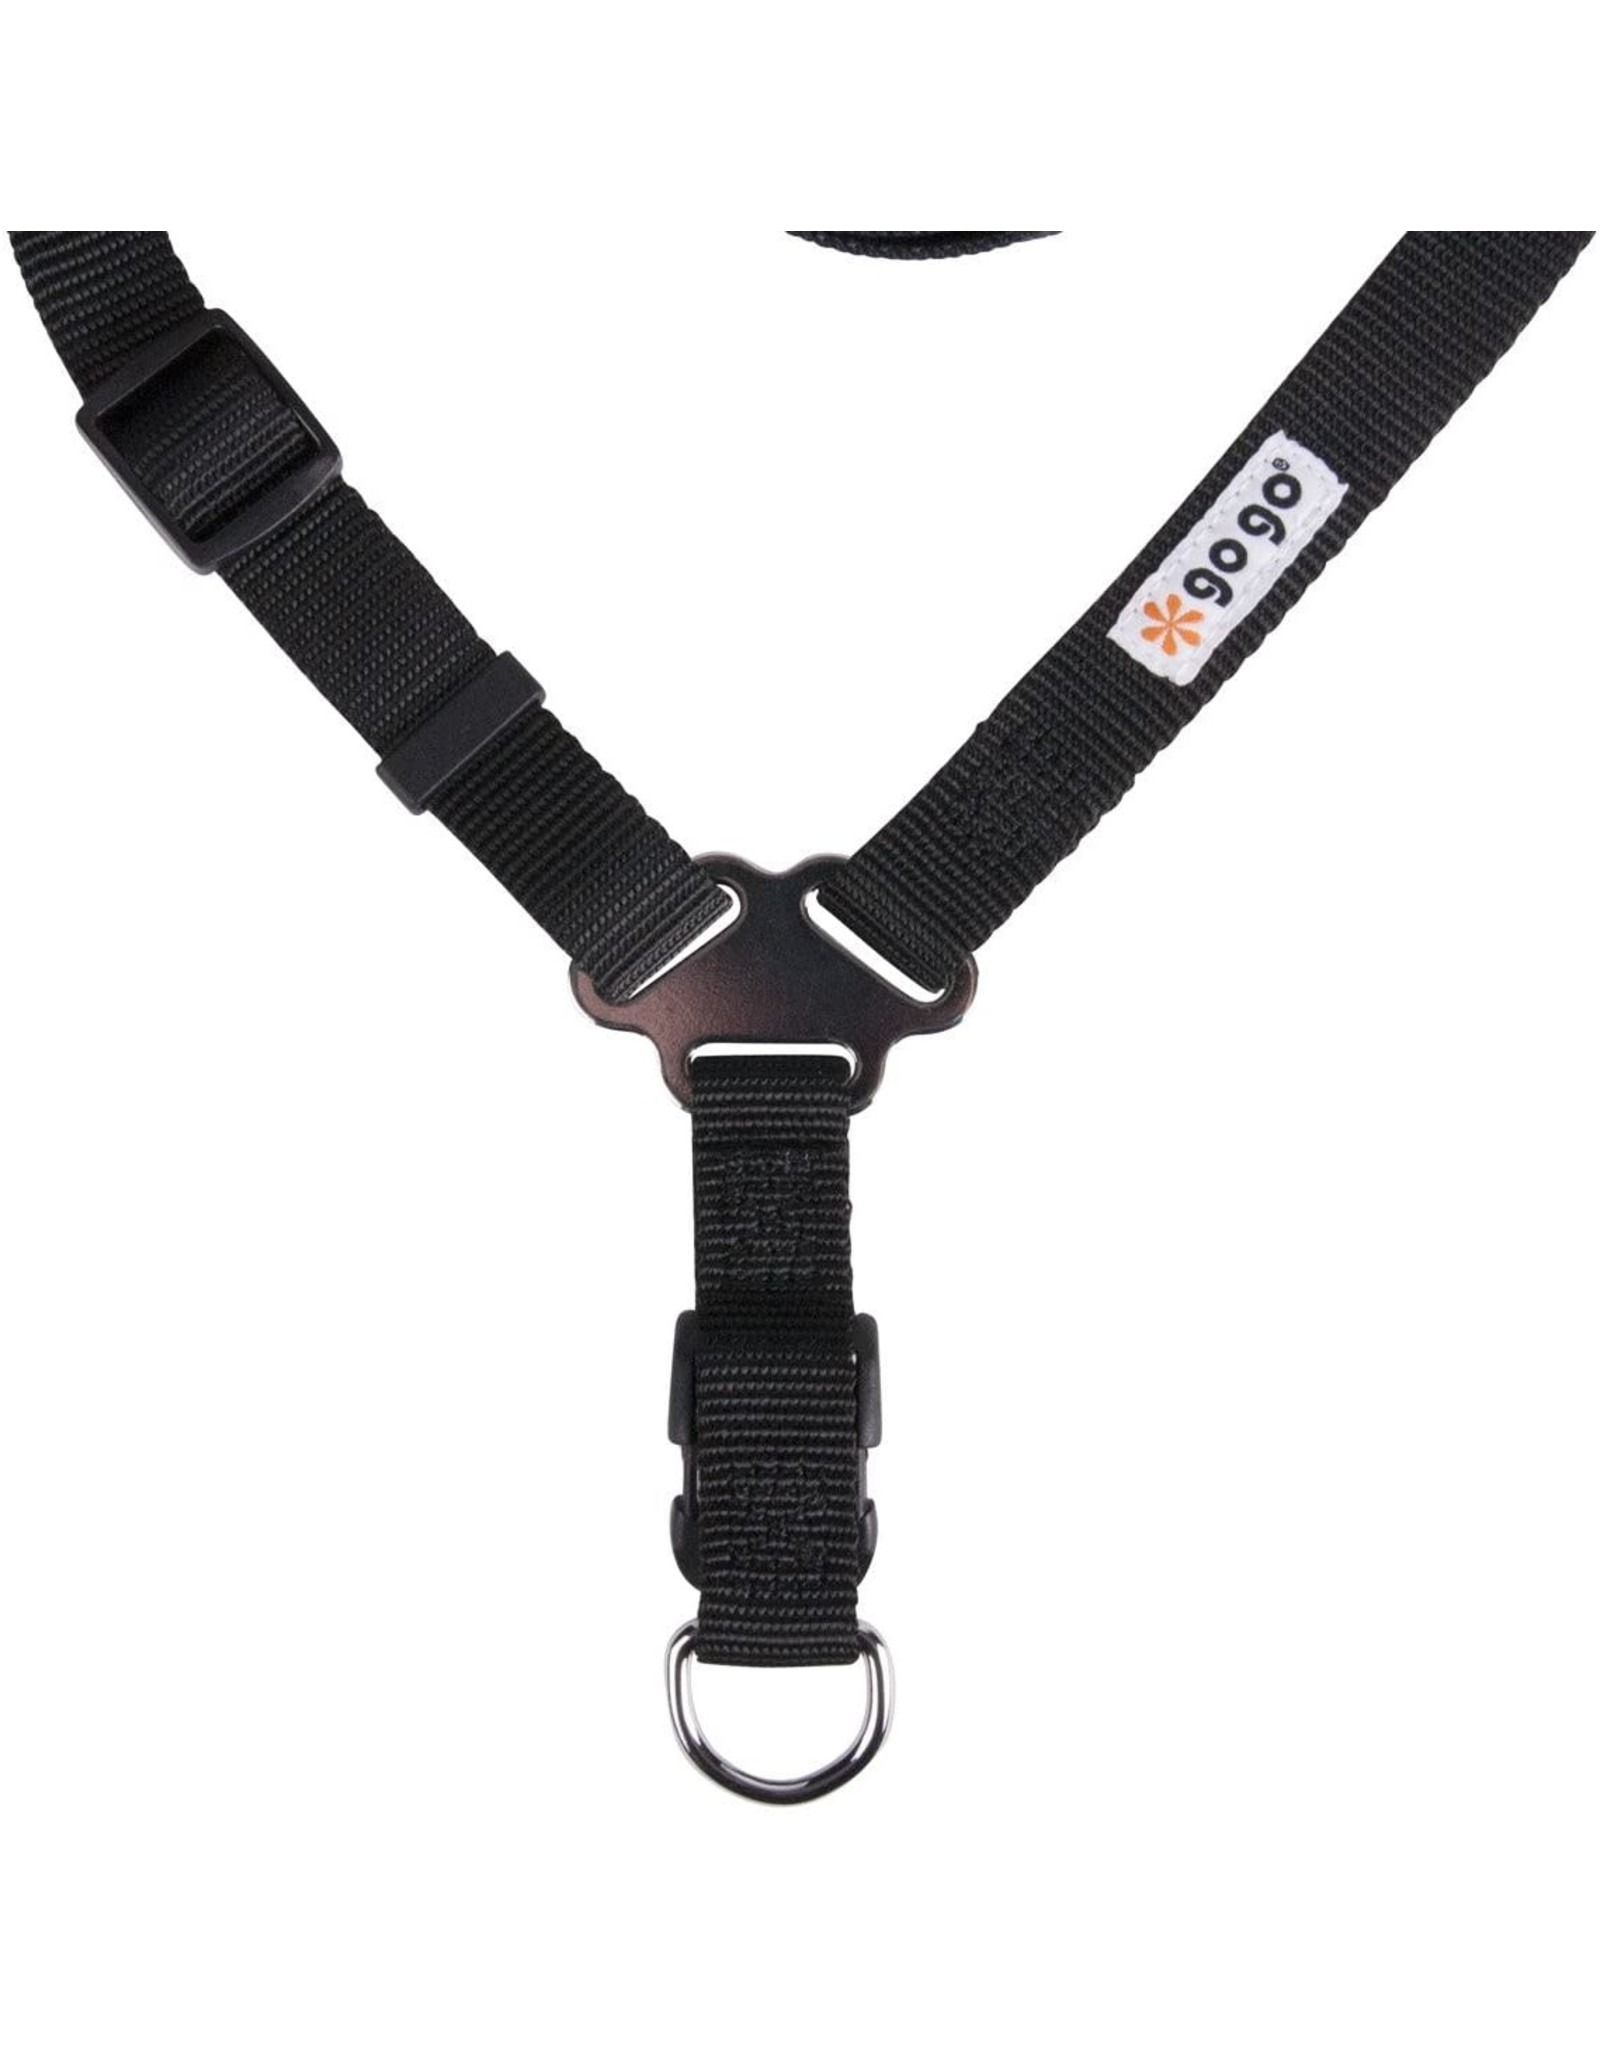 GoGo Pet Products GOGO BLACK NYLON COMFY HARNESS FOR DOGS